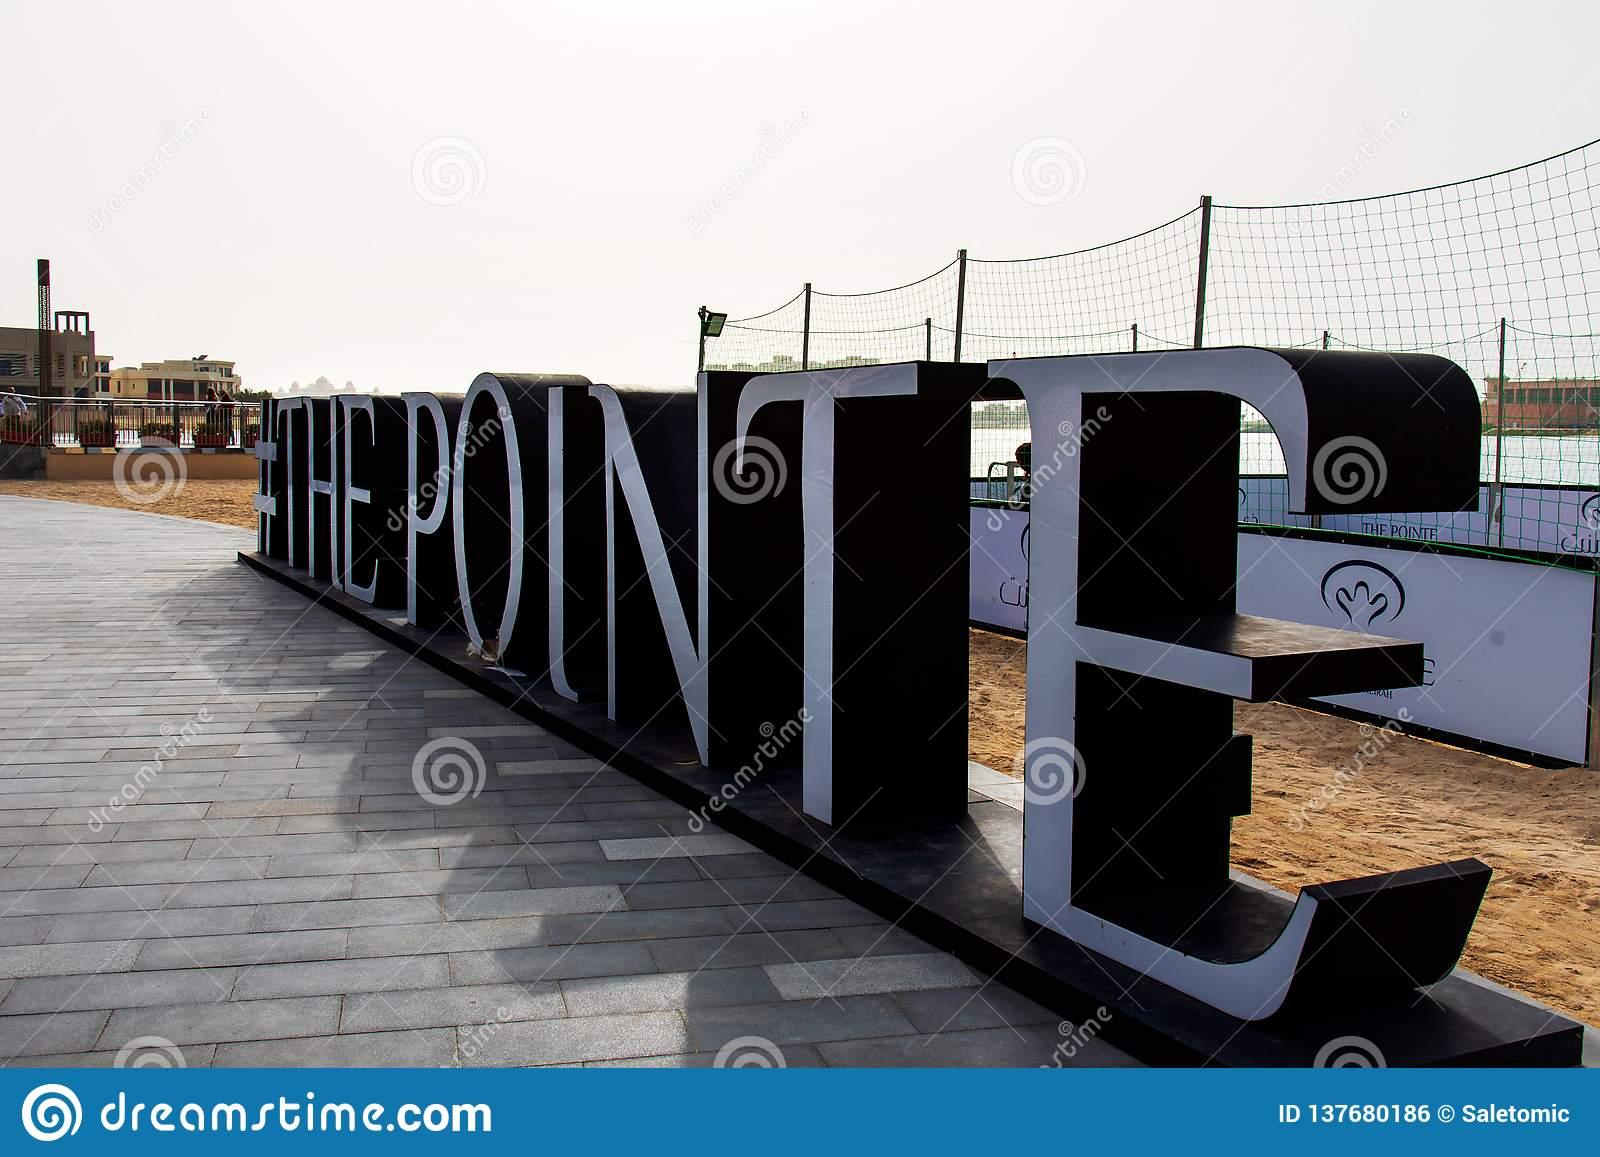 Dubai, United Arab Emirates - January 25, 2019: The Pointe waterfront dining and entertainment destination at the Palm Jumeirah